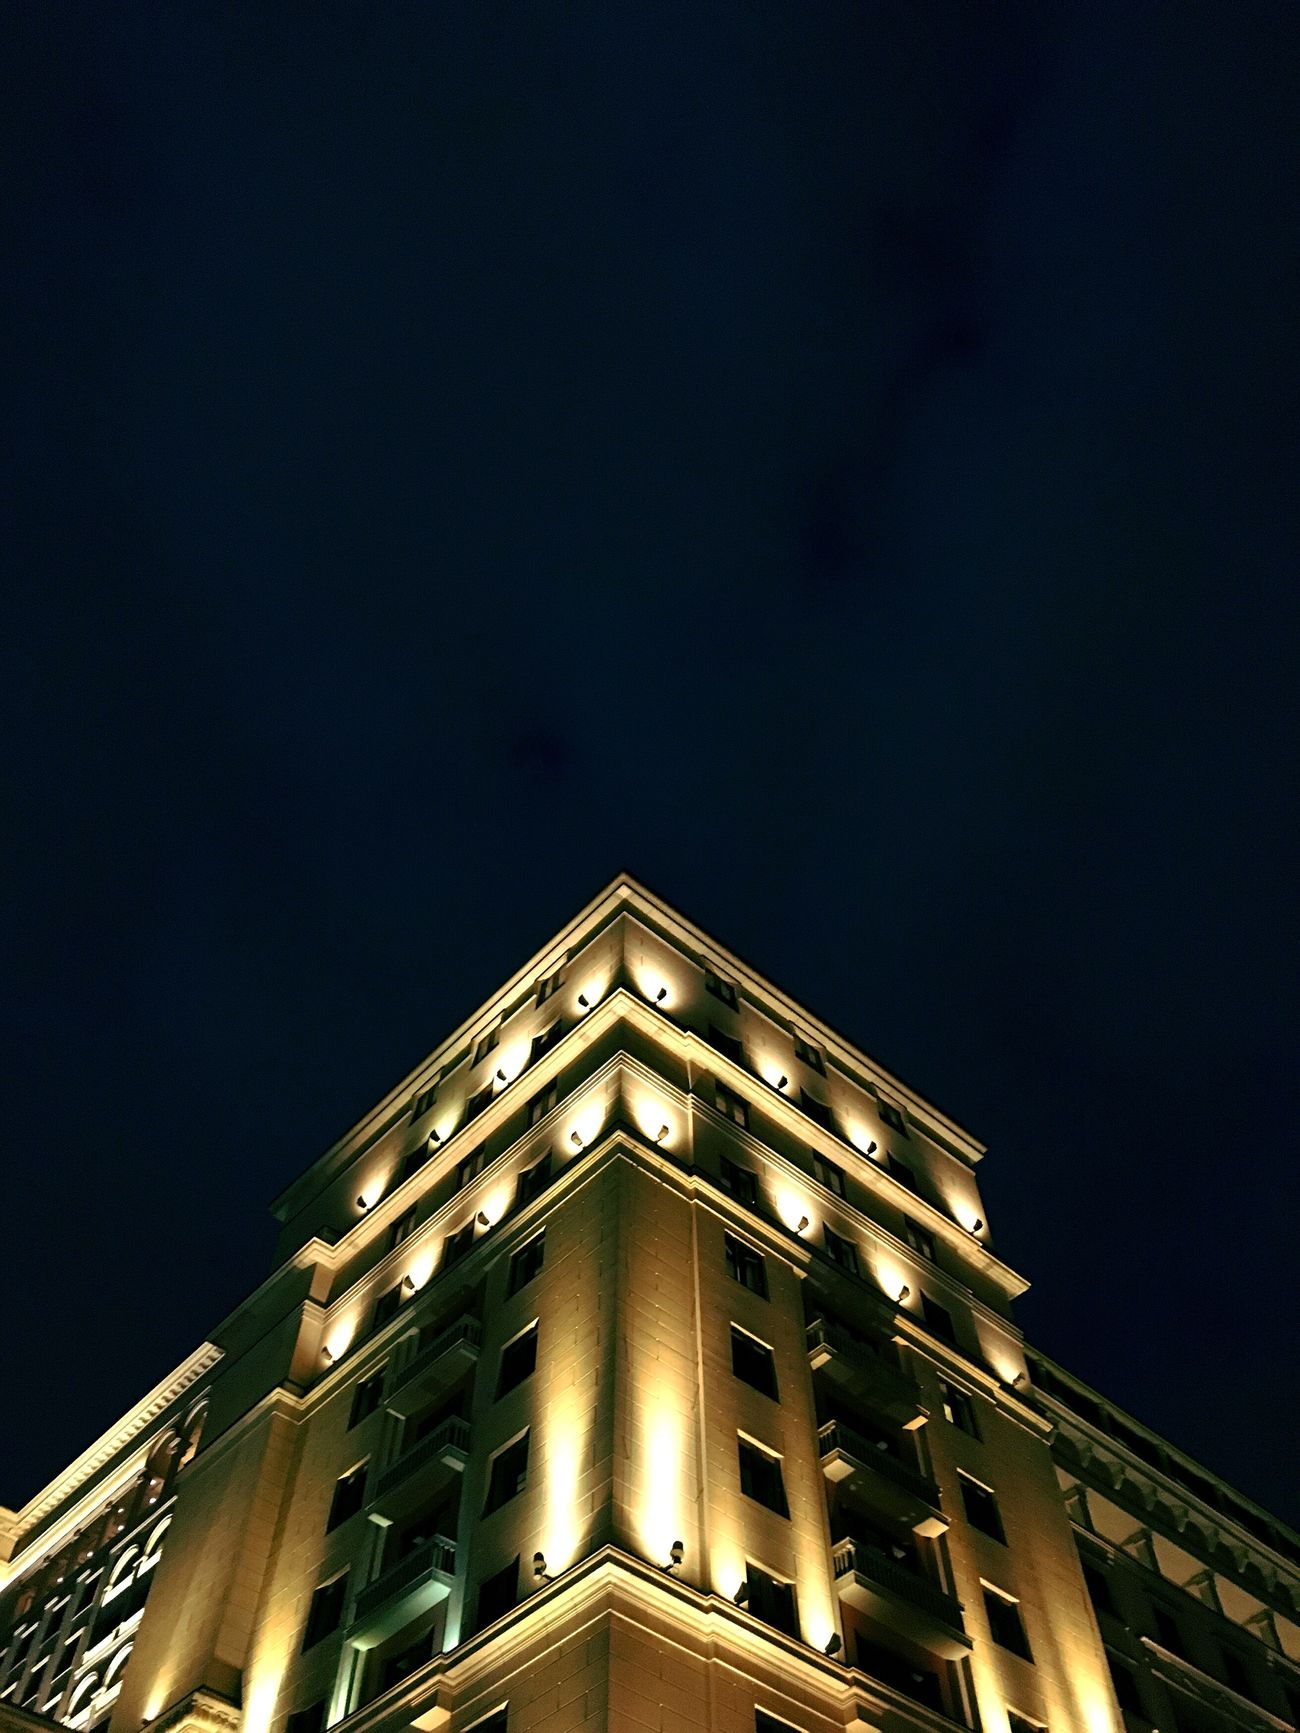 Moscow Msk City City Life Bulding Architecture Light Lights Night IPhoneography